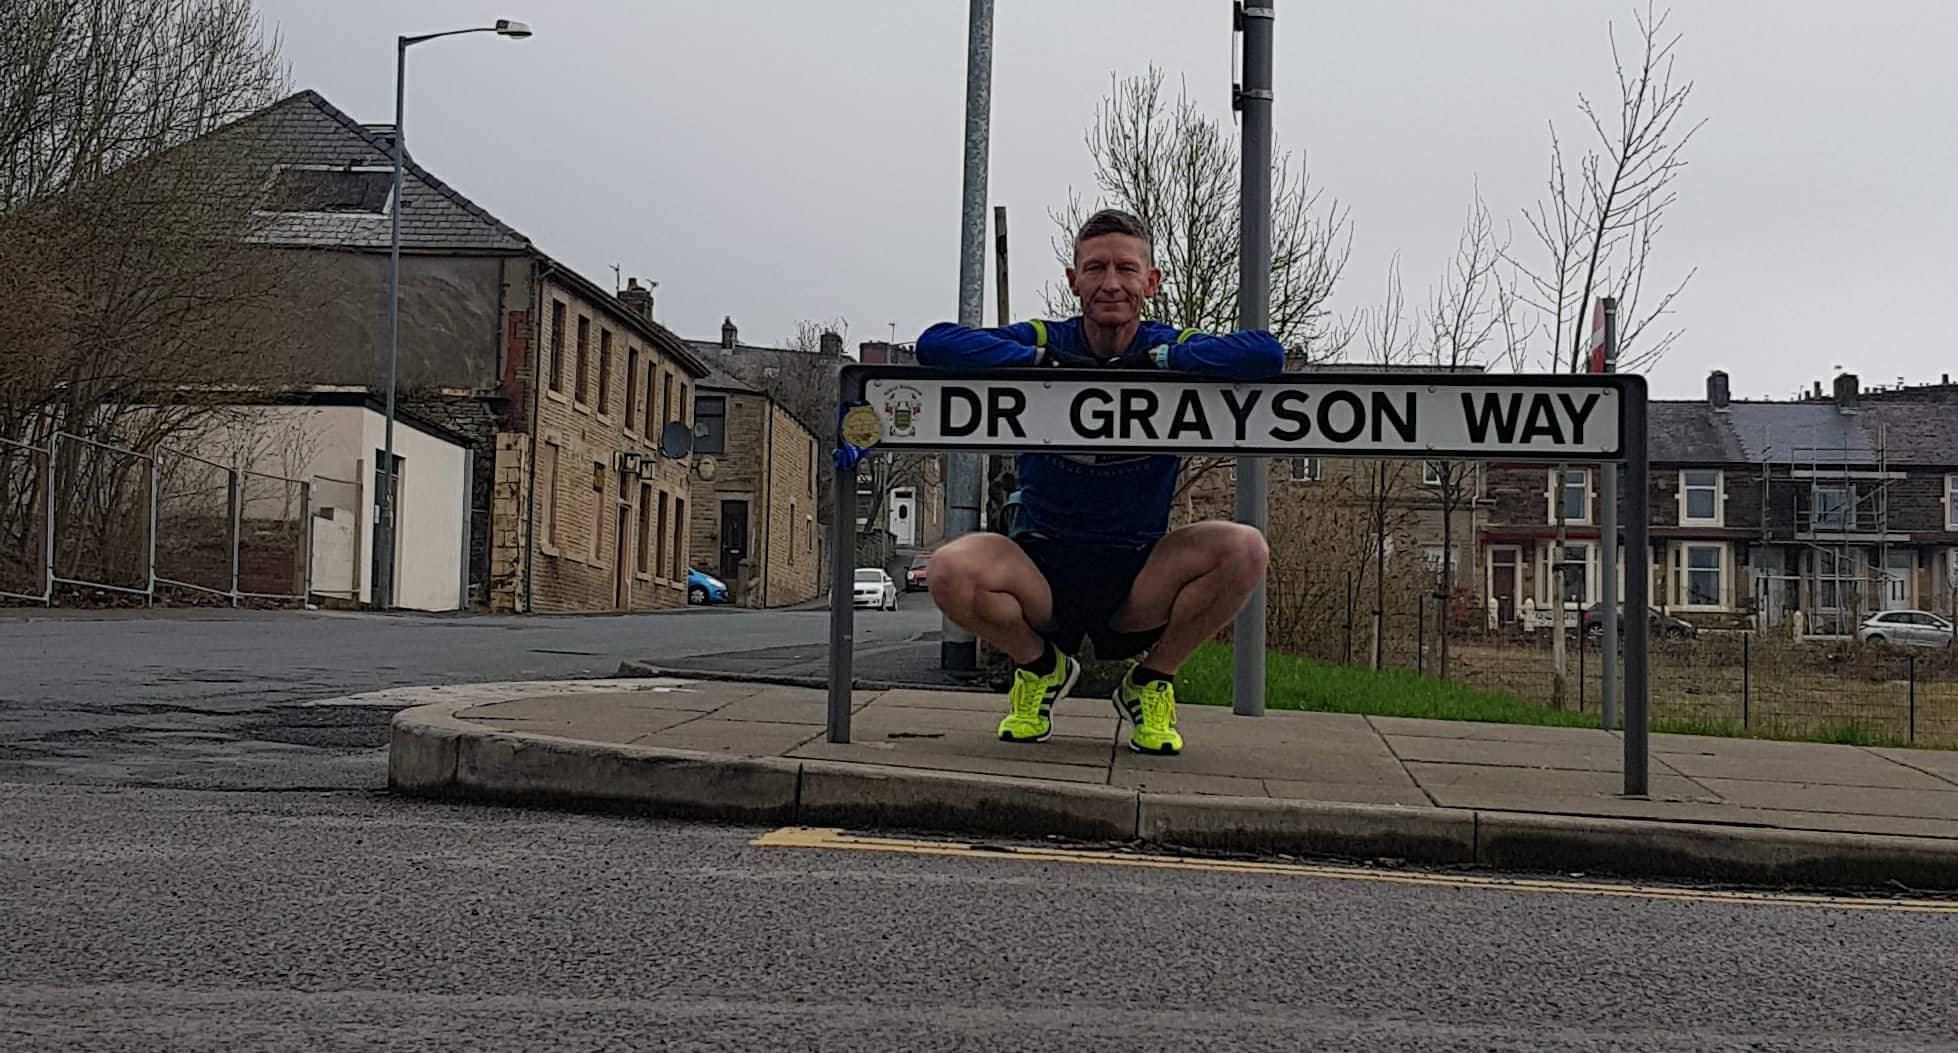 Críostóir Grayson with the medal left on the sign in memory of his brother Dr Robert Grayson